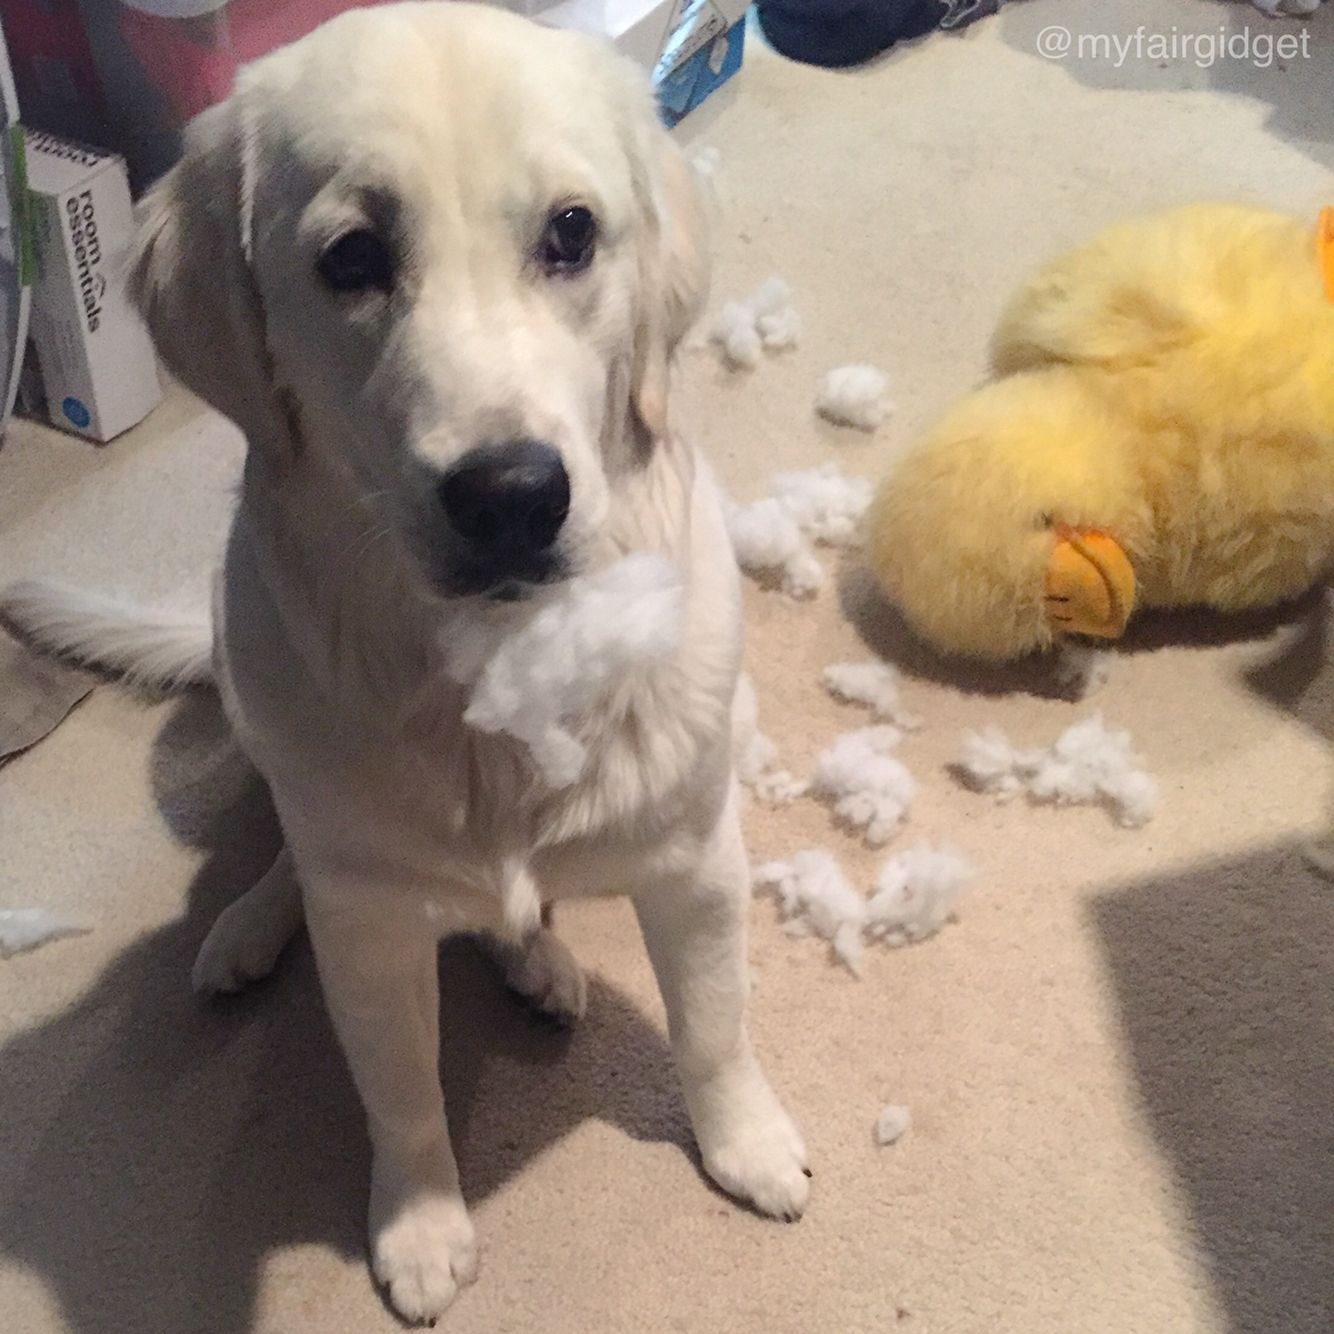 There S Bernard Terrible Accident Gidget Lokelani The Little Puppy With Big Ideas An English Cream Golden Retriever Loving Living In Beautiful Northern